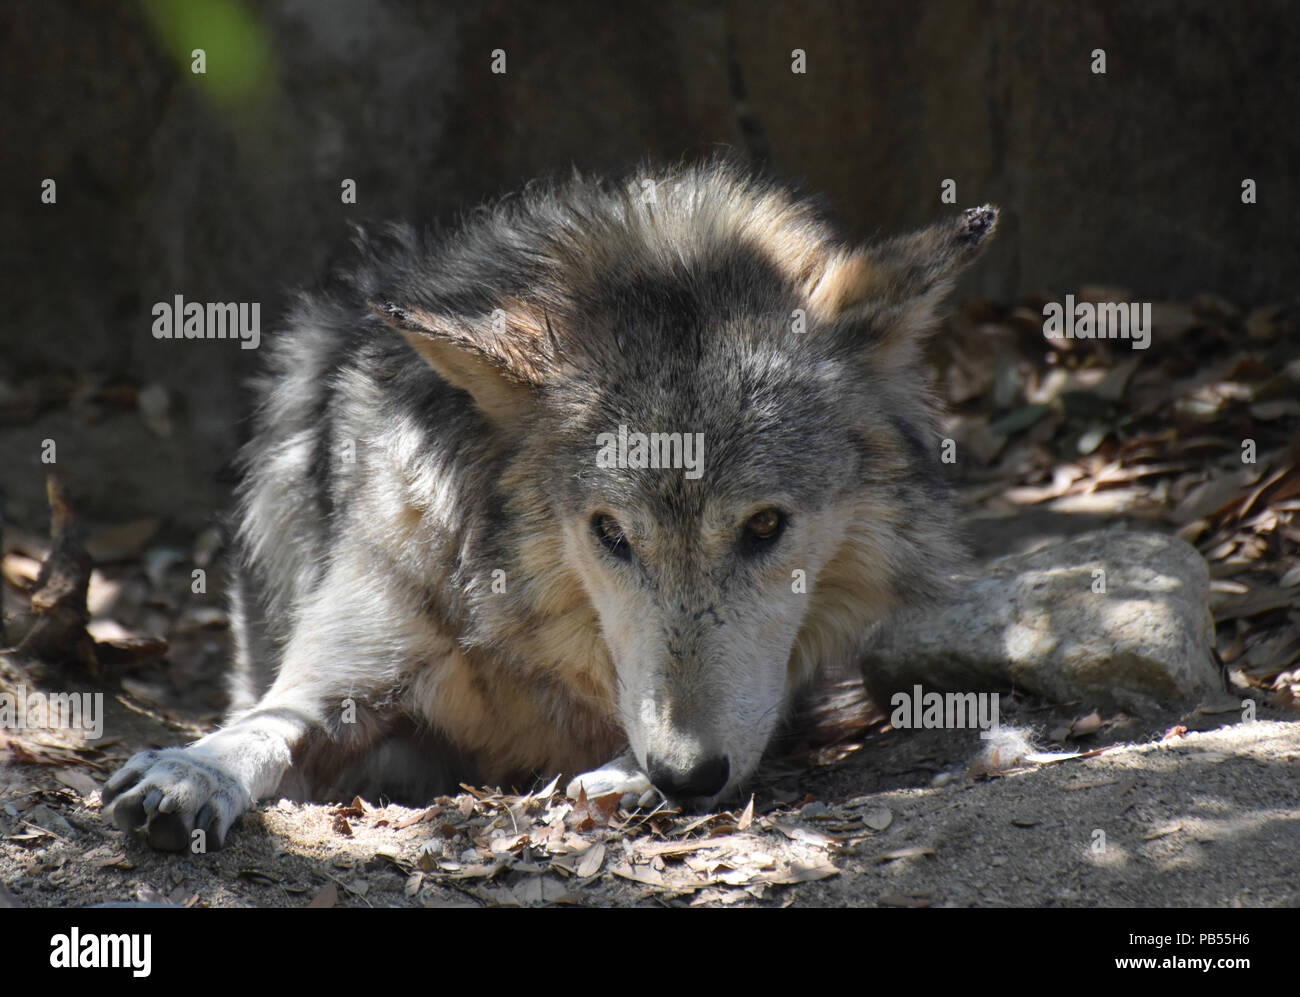 Spring day with thick fur on a tundra wolf resting. - Stock Image